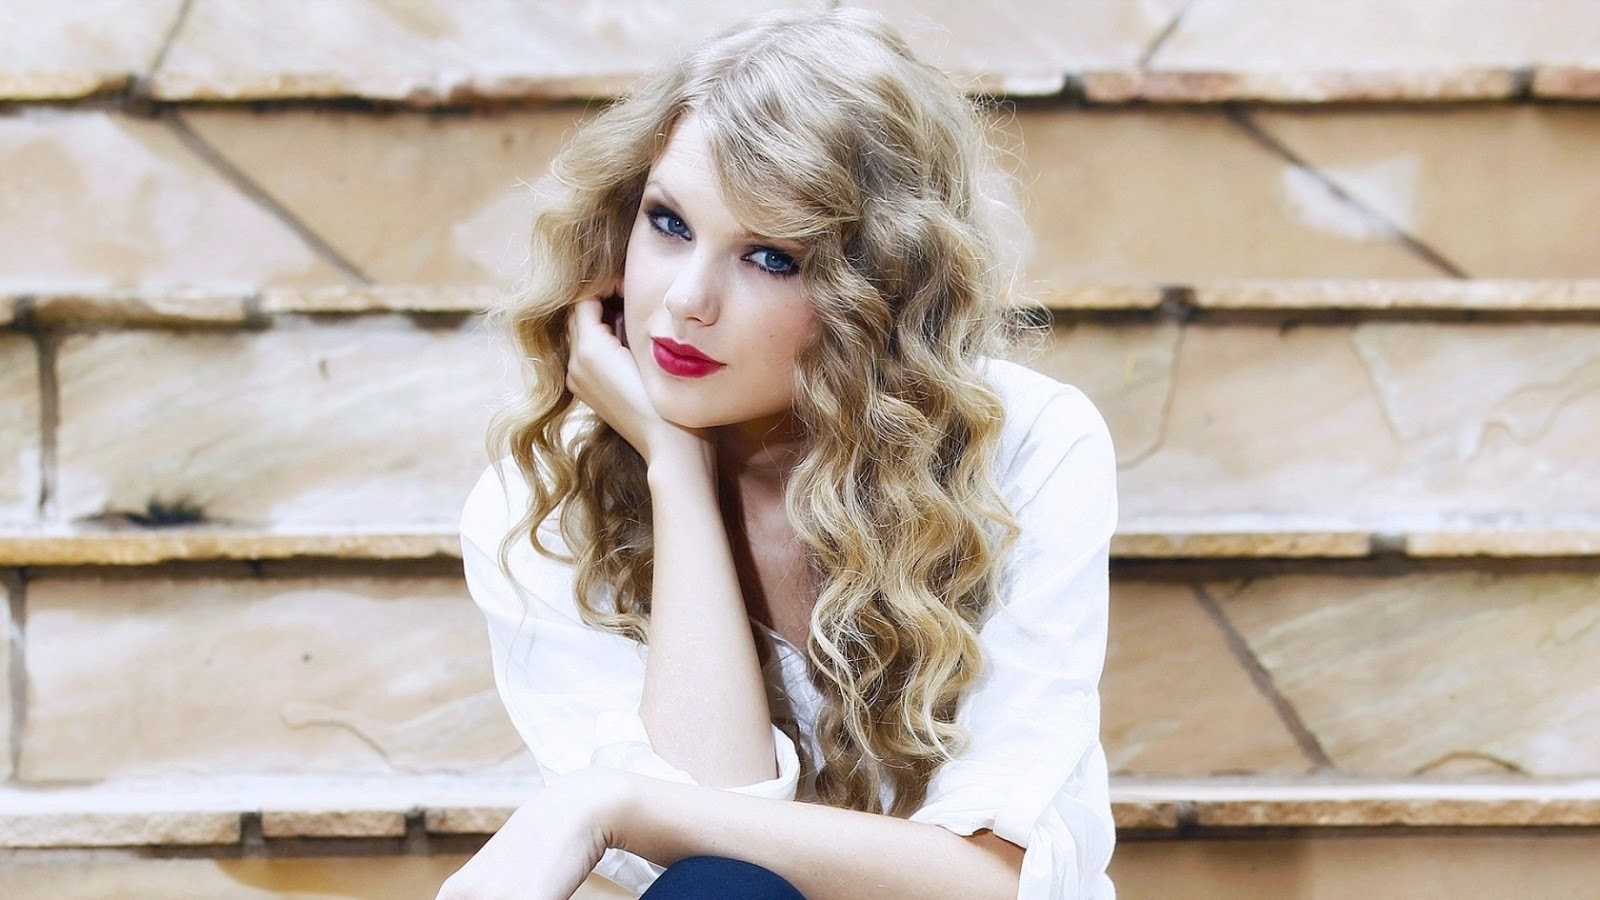 Taylor Swift Latest HD Wallpapers 2013 All About HD 1600x900